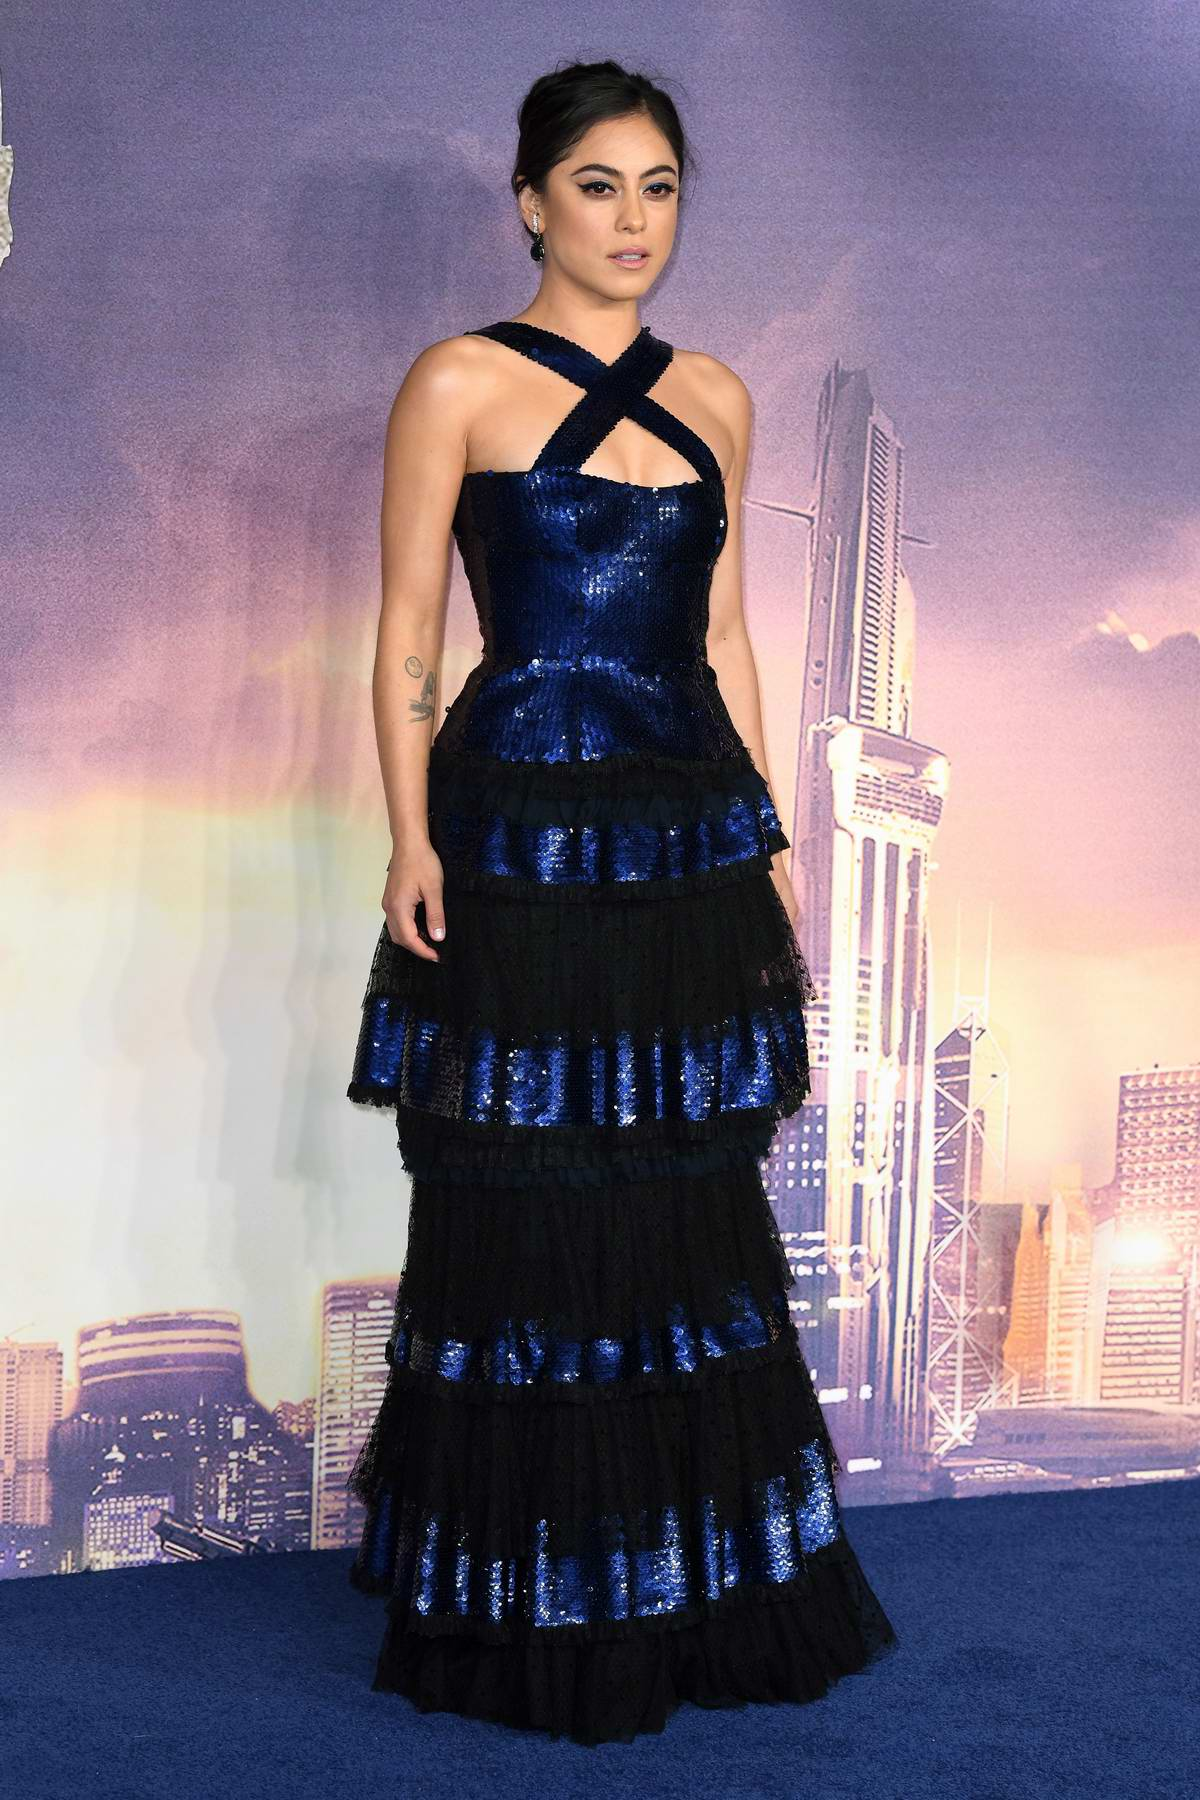 Rosa Salazar attends the Alita: Battle Angel premiere at Odeon Leicester Square in London, UK